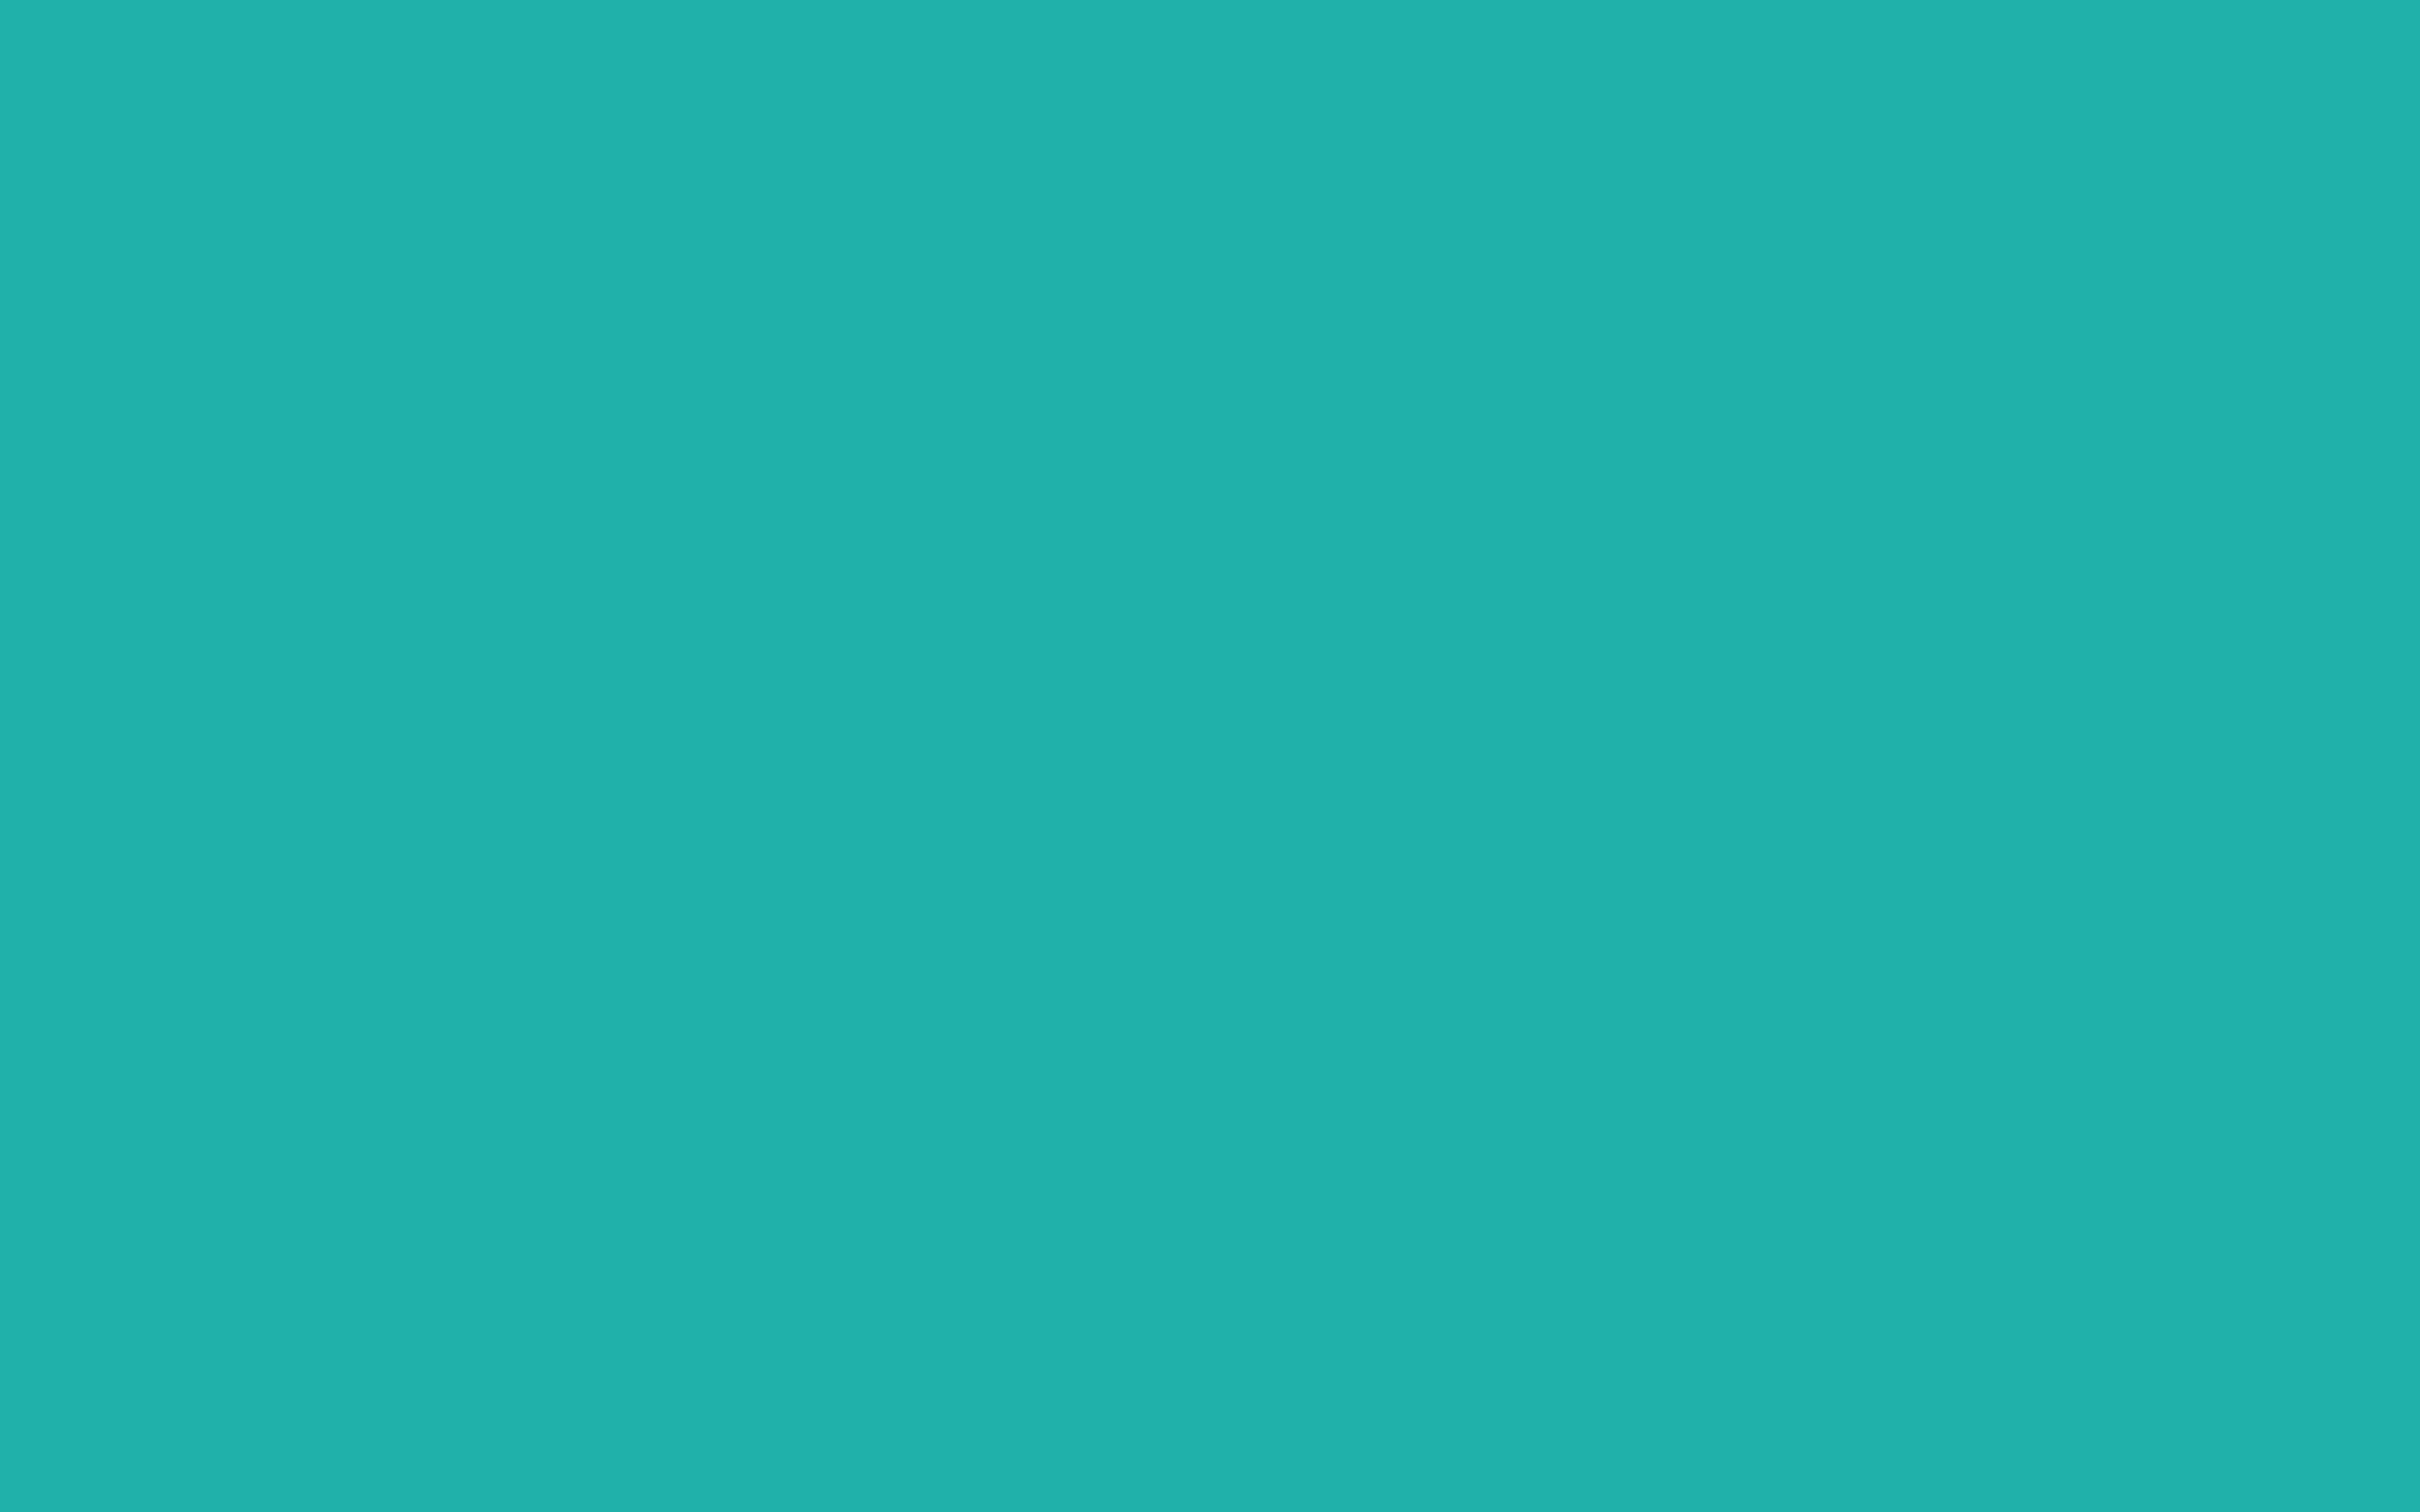 2560x1600 Light Sea Green Solid Color Background